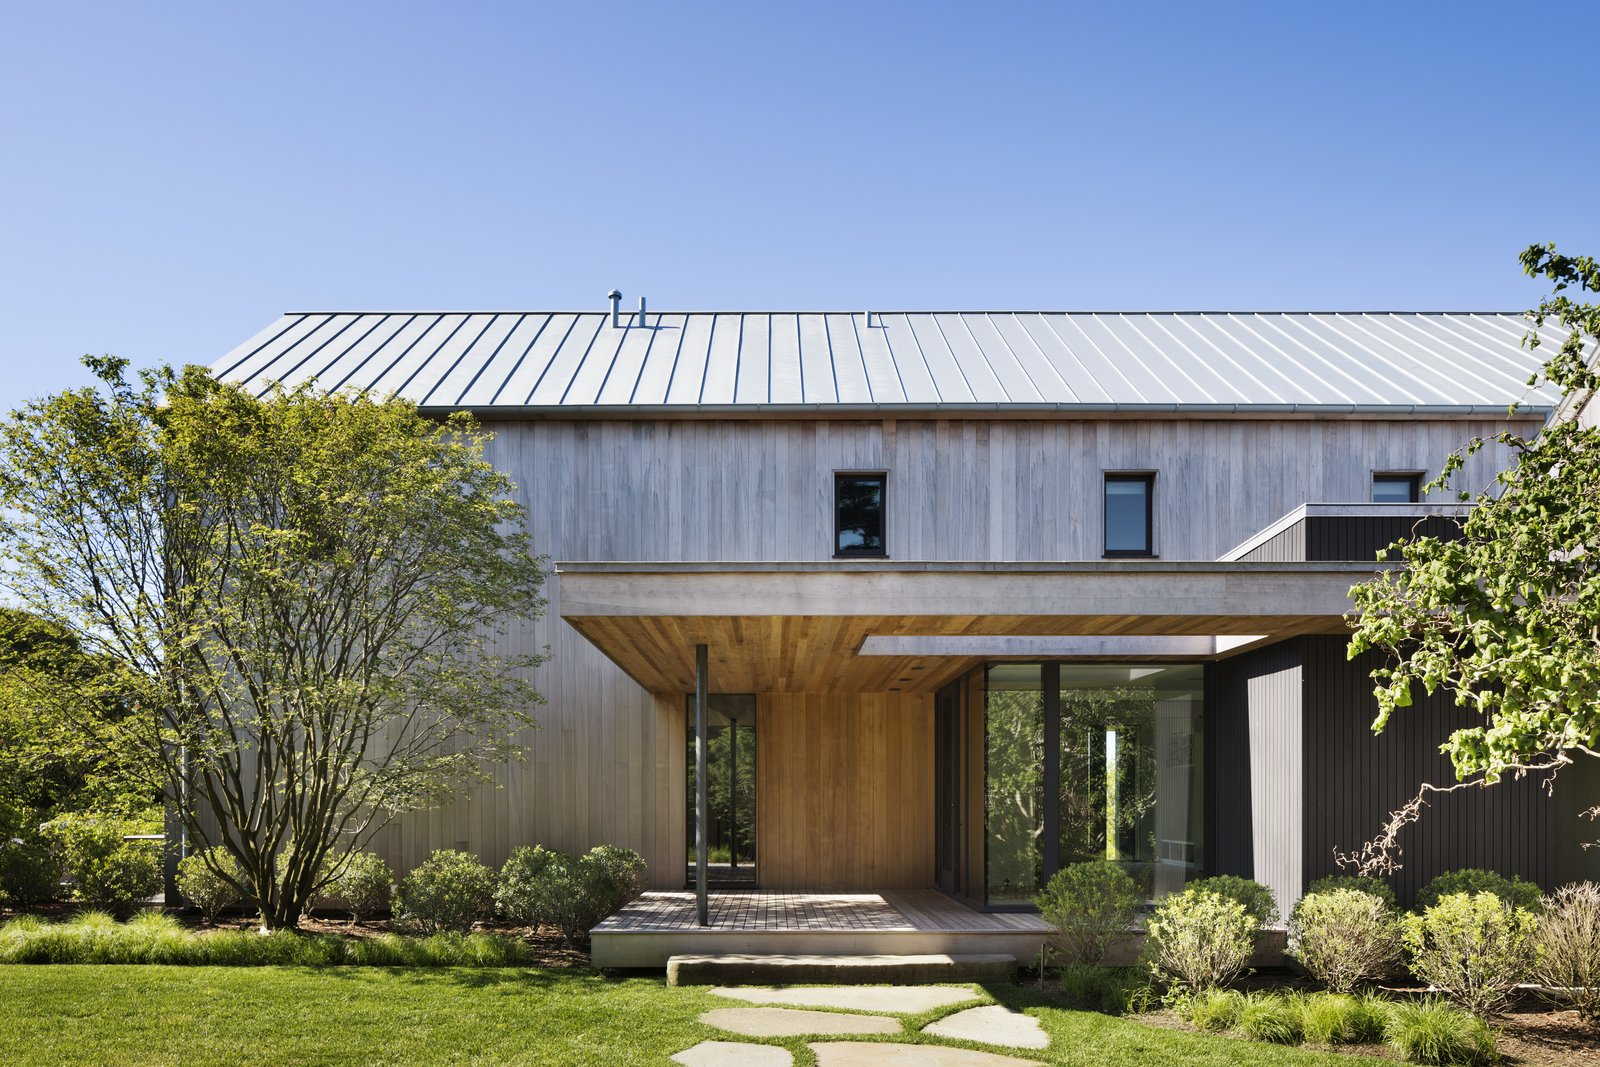 Exterior, Metal Roof Material, Beach House Building Type, House Building Type, Wood Siding Material, and Gable RoofLine The unfinished cedar planks will develope a silvery patina over time.  Best Photos from Two Cedar-Clad Structures Form a Unique Montauk Retreat